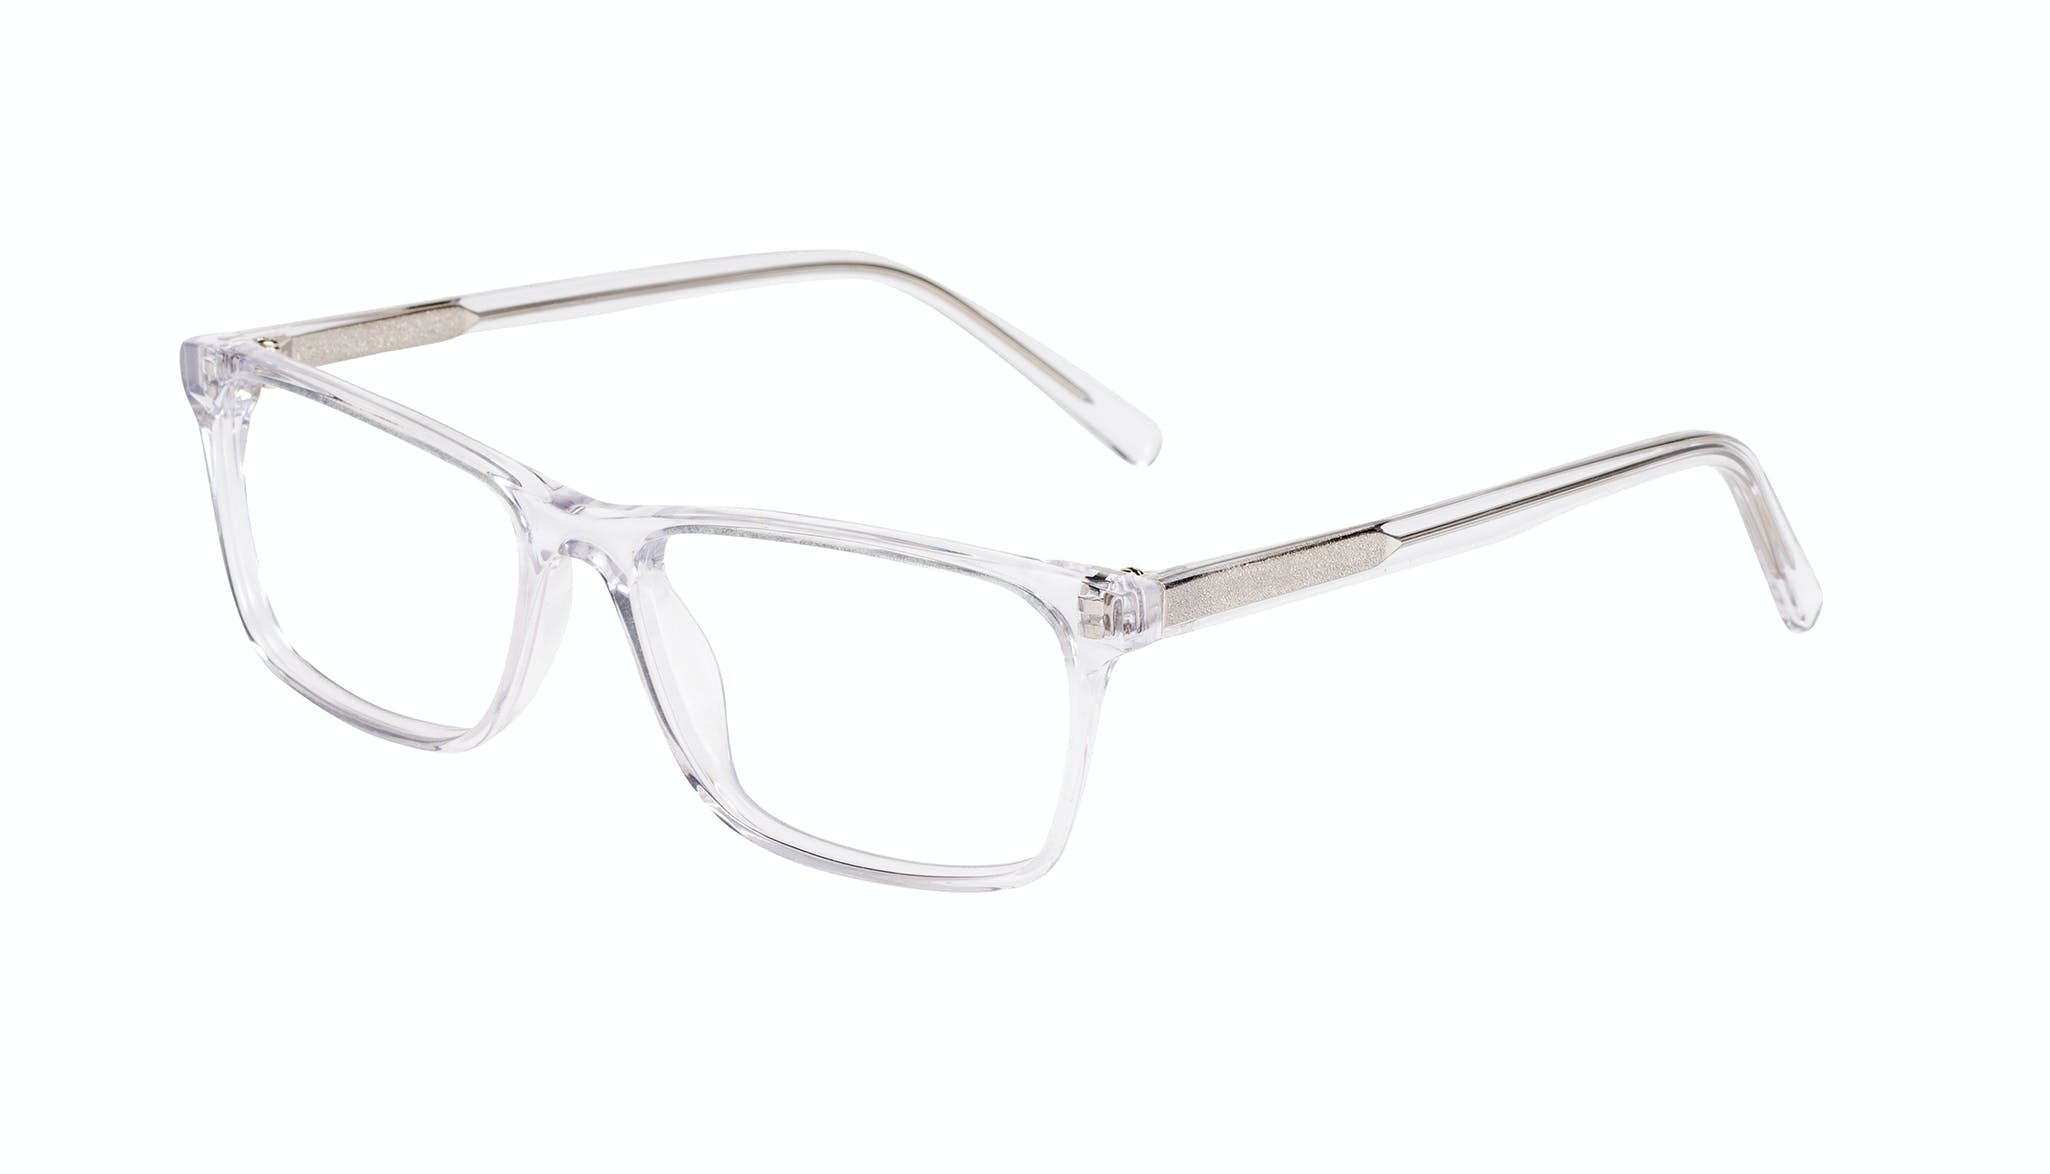 Affordable Fashion Glasses Rectangle Eyeglasses Men Henri Clear Tilt